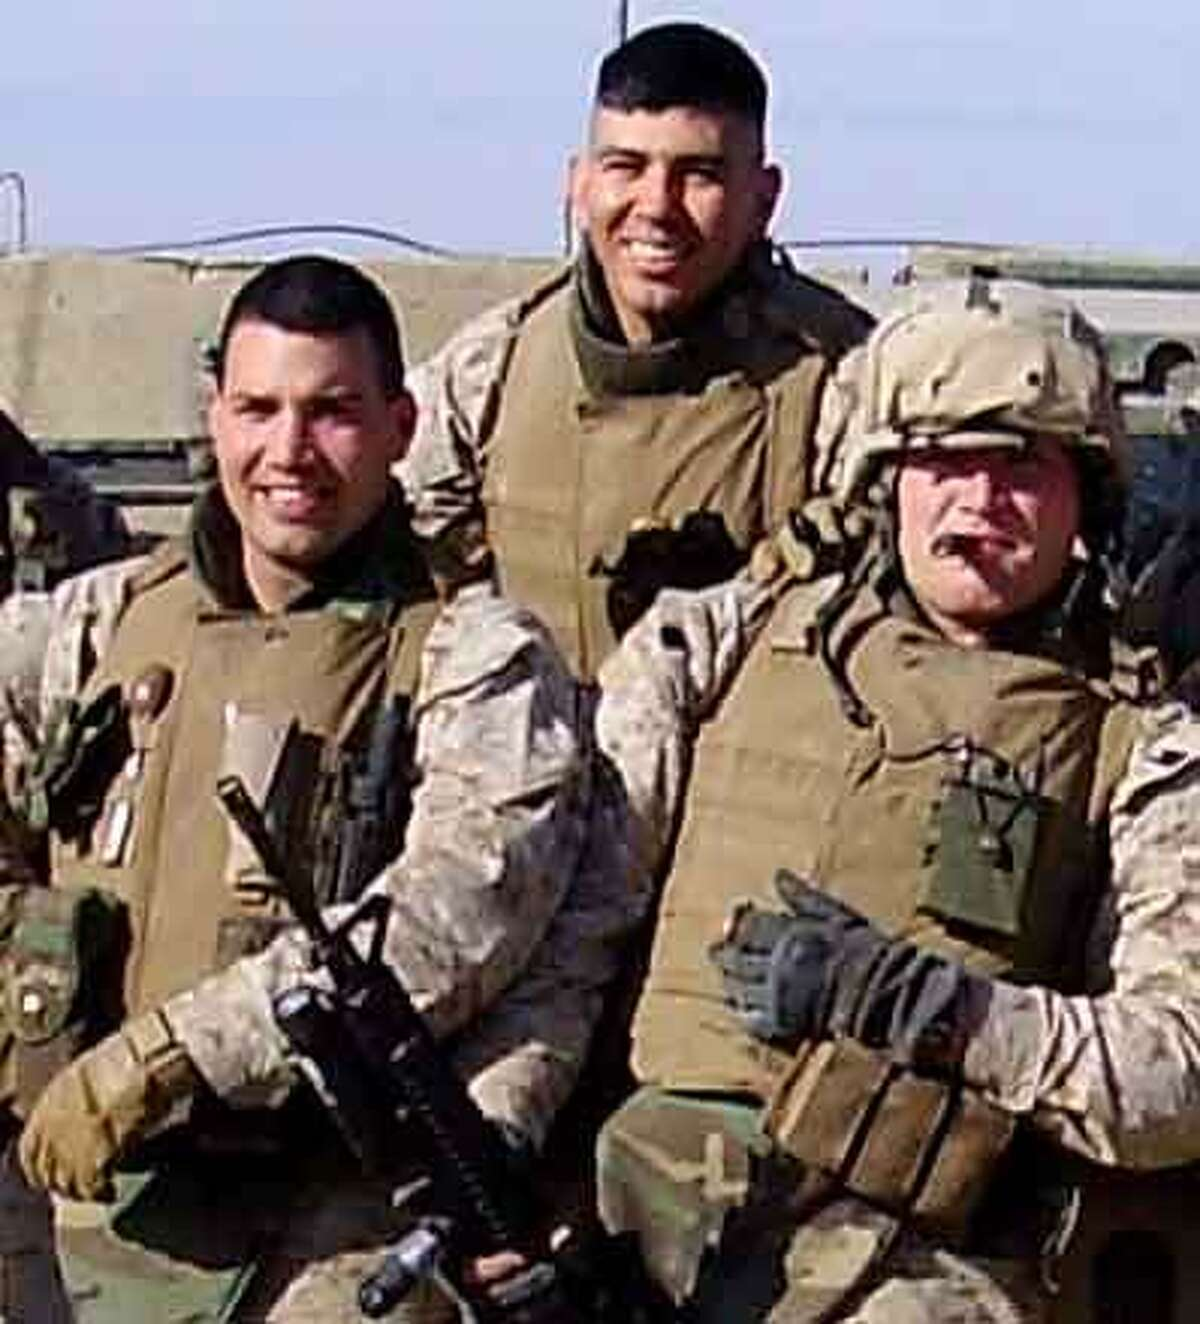 """A 2005 photograph of Sgt. Roman Baca, second from left, with fellow U.S. Marines in Fallujah Irag. Baca was a fire-team leader and machine gunner. Today, veteran Roman Baca carries the title of """"Alumni Associate""""working as a full-time veterans' advocate with the non-profit Mission Continues in New York City. Photo Courtesy of Roman Baca / New Haven Register"""